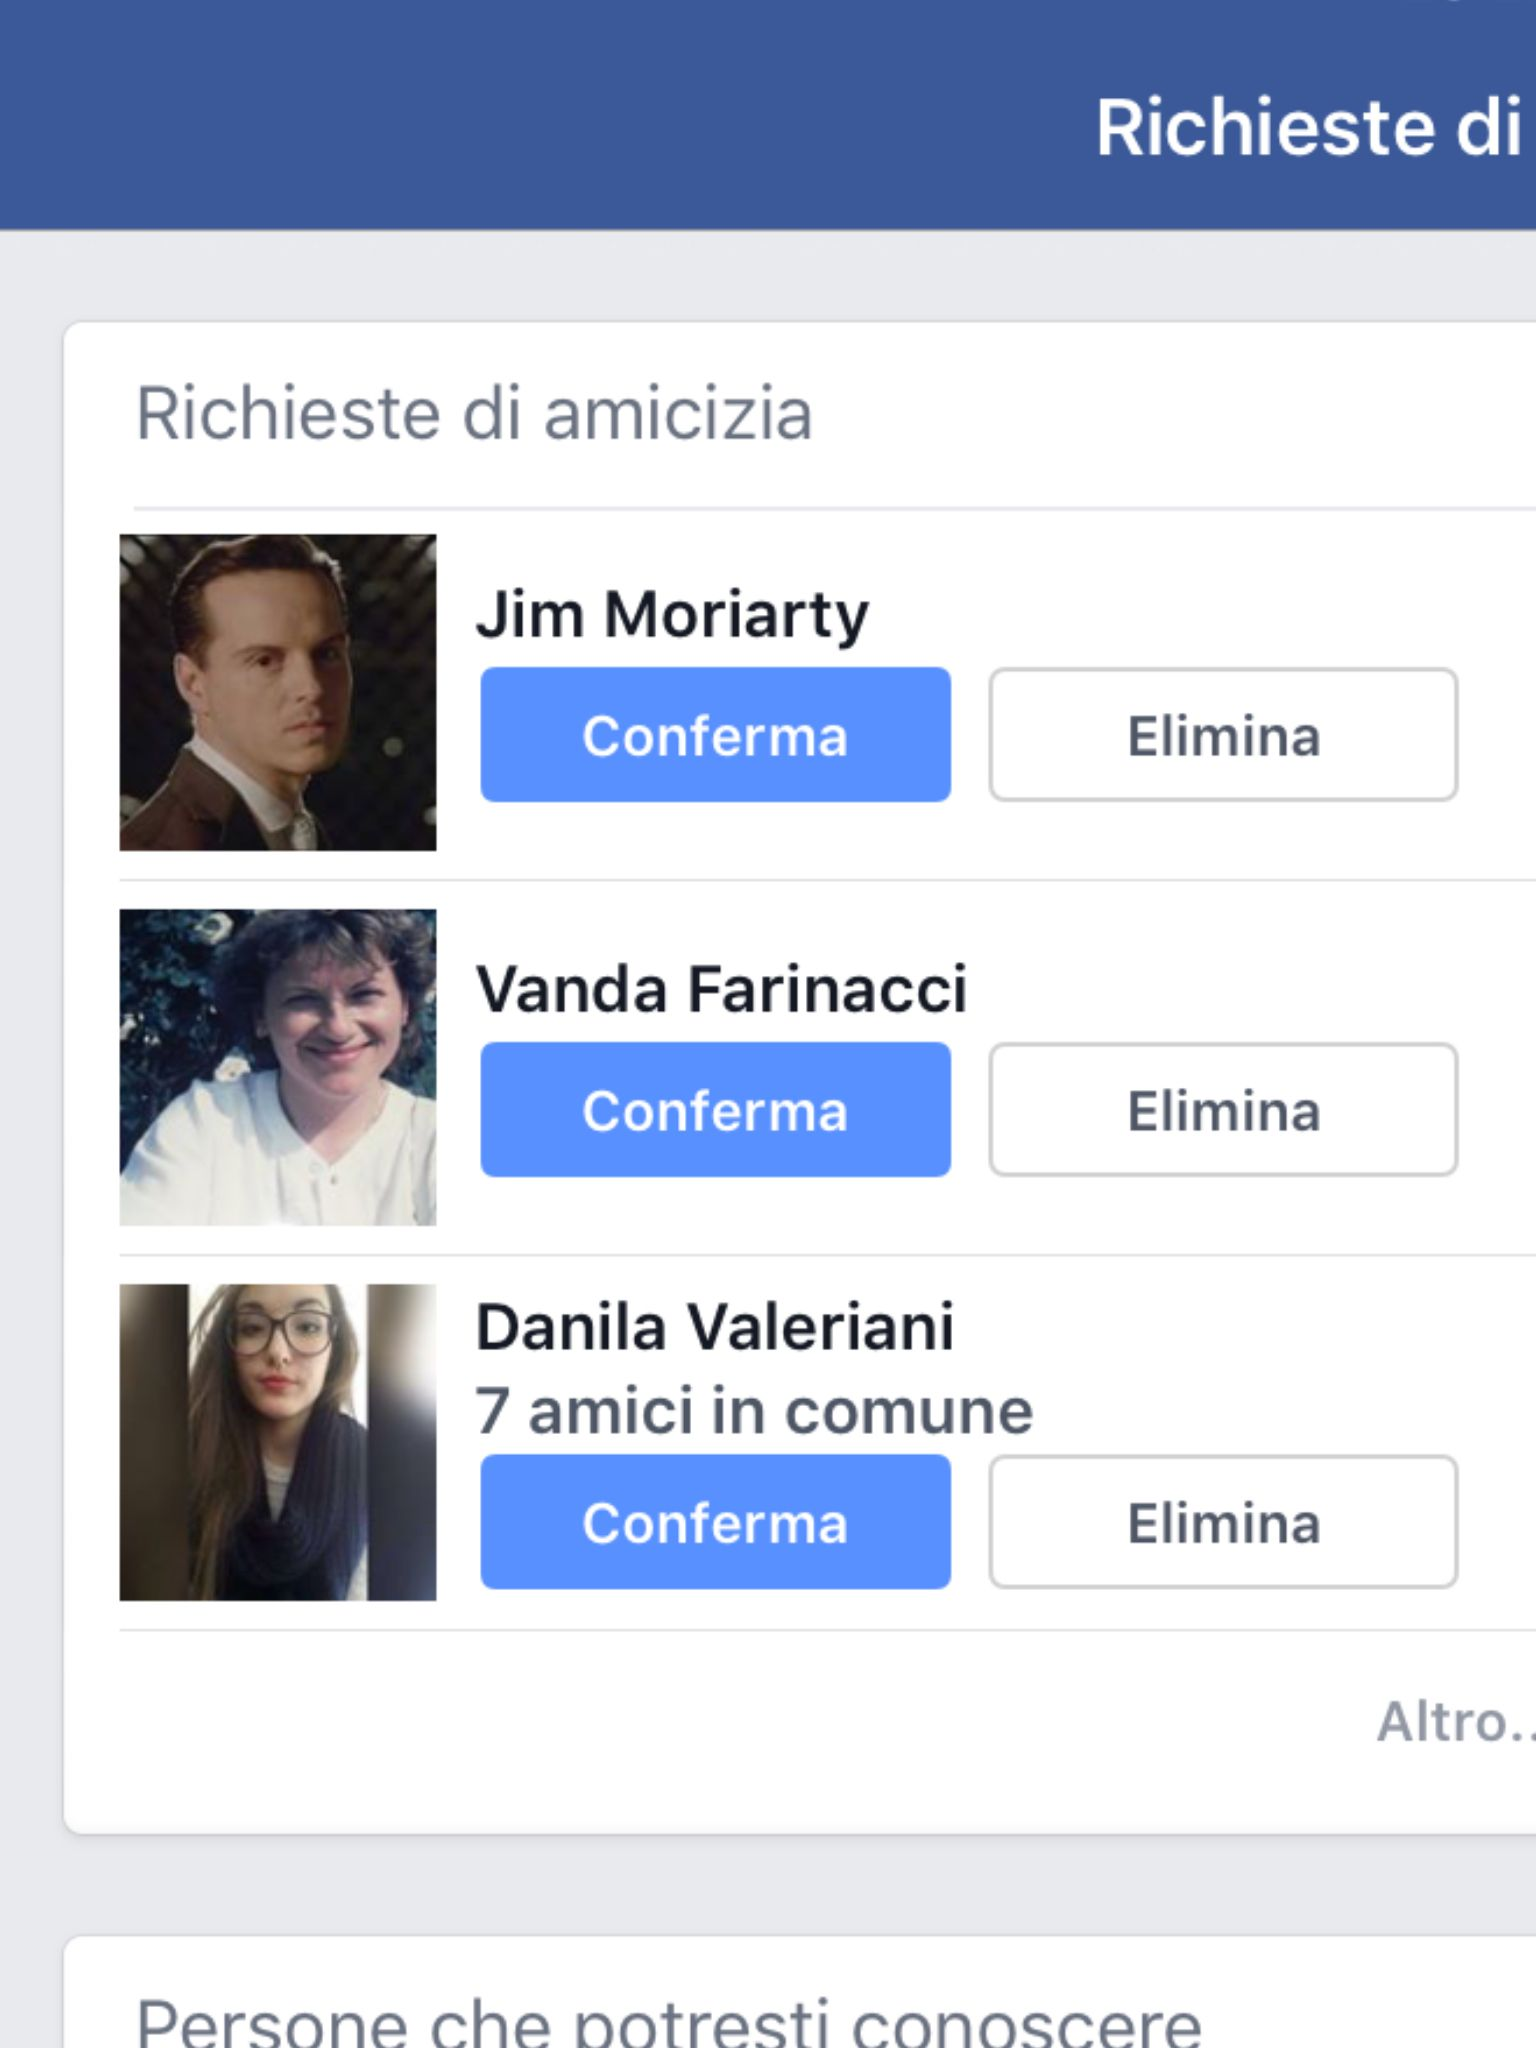 When Moriarty asks to be your friend on Facebook....